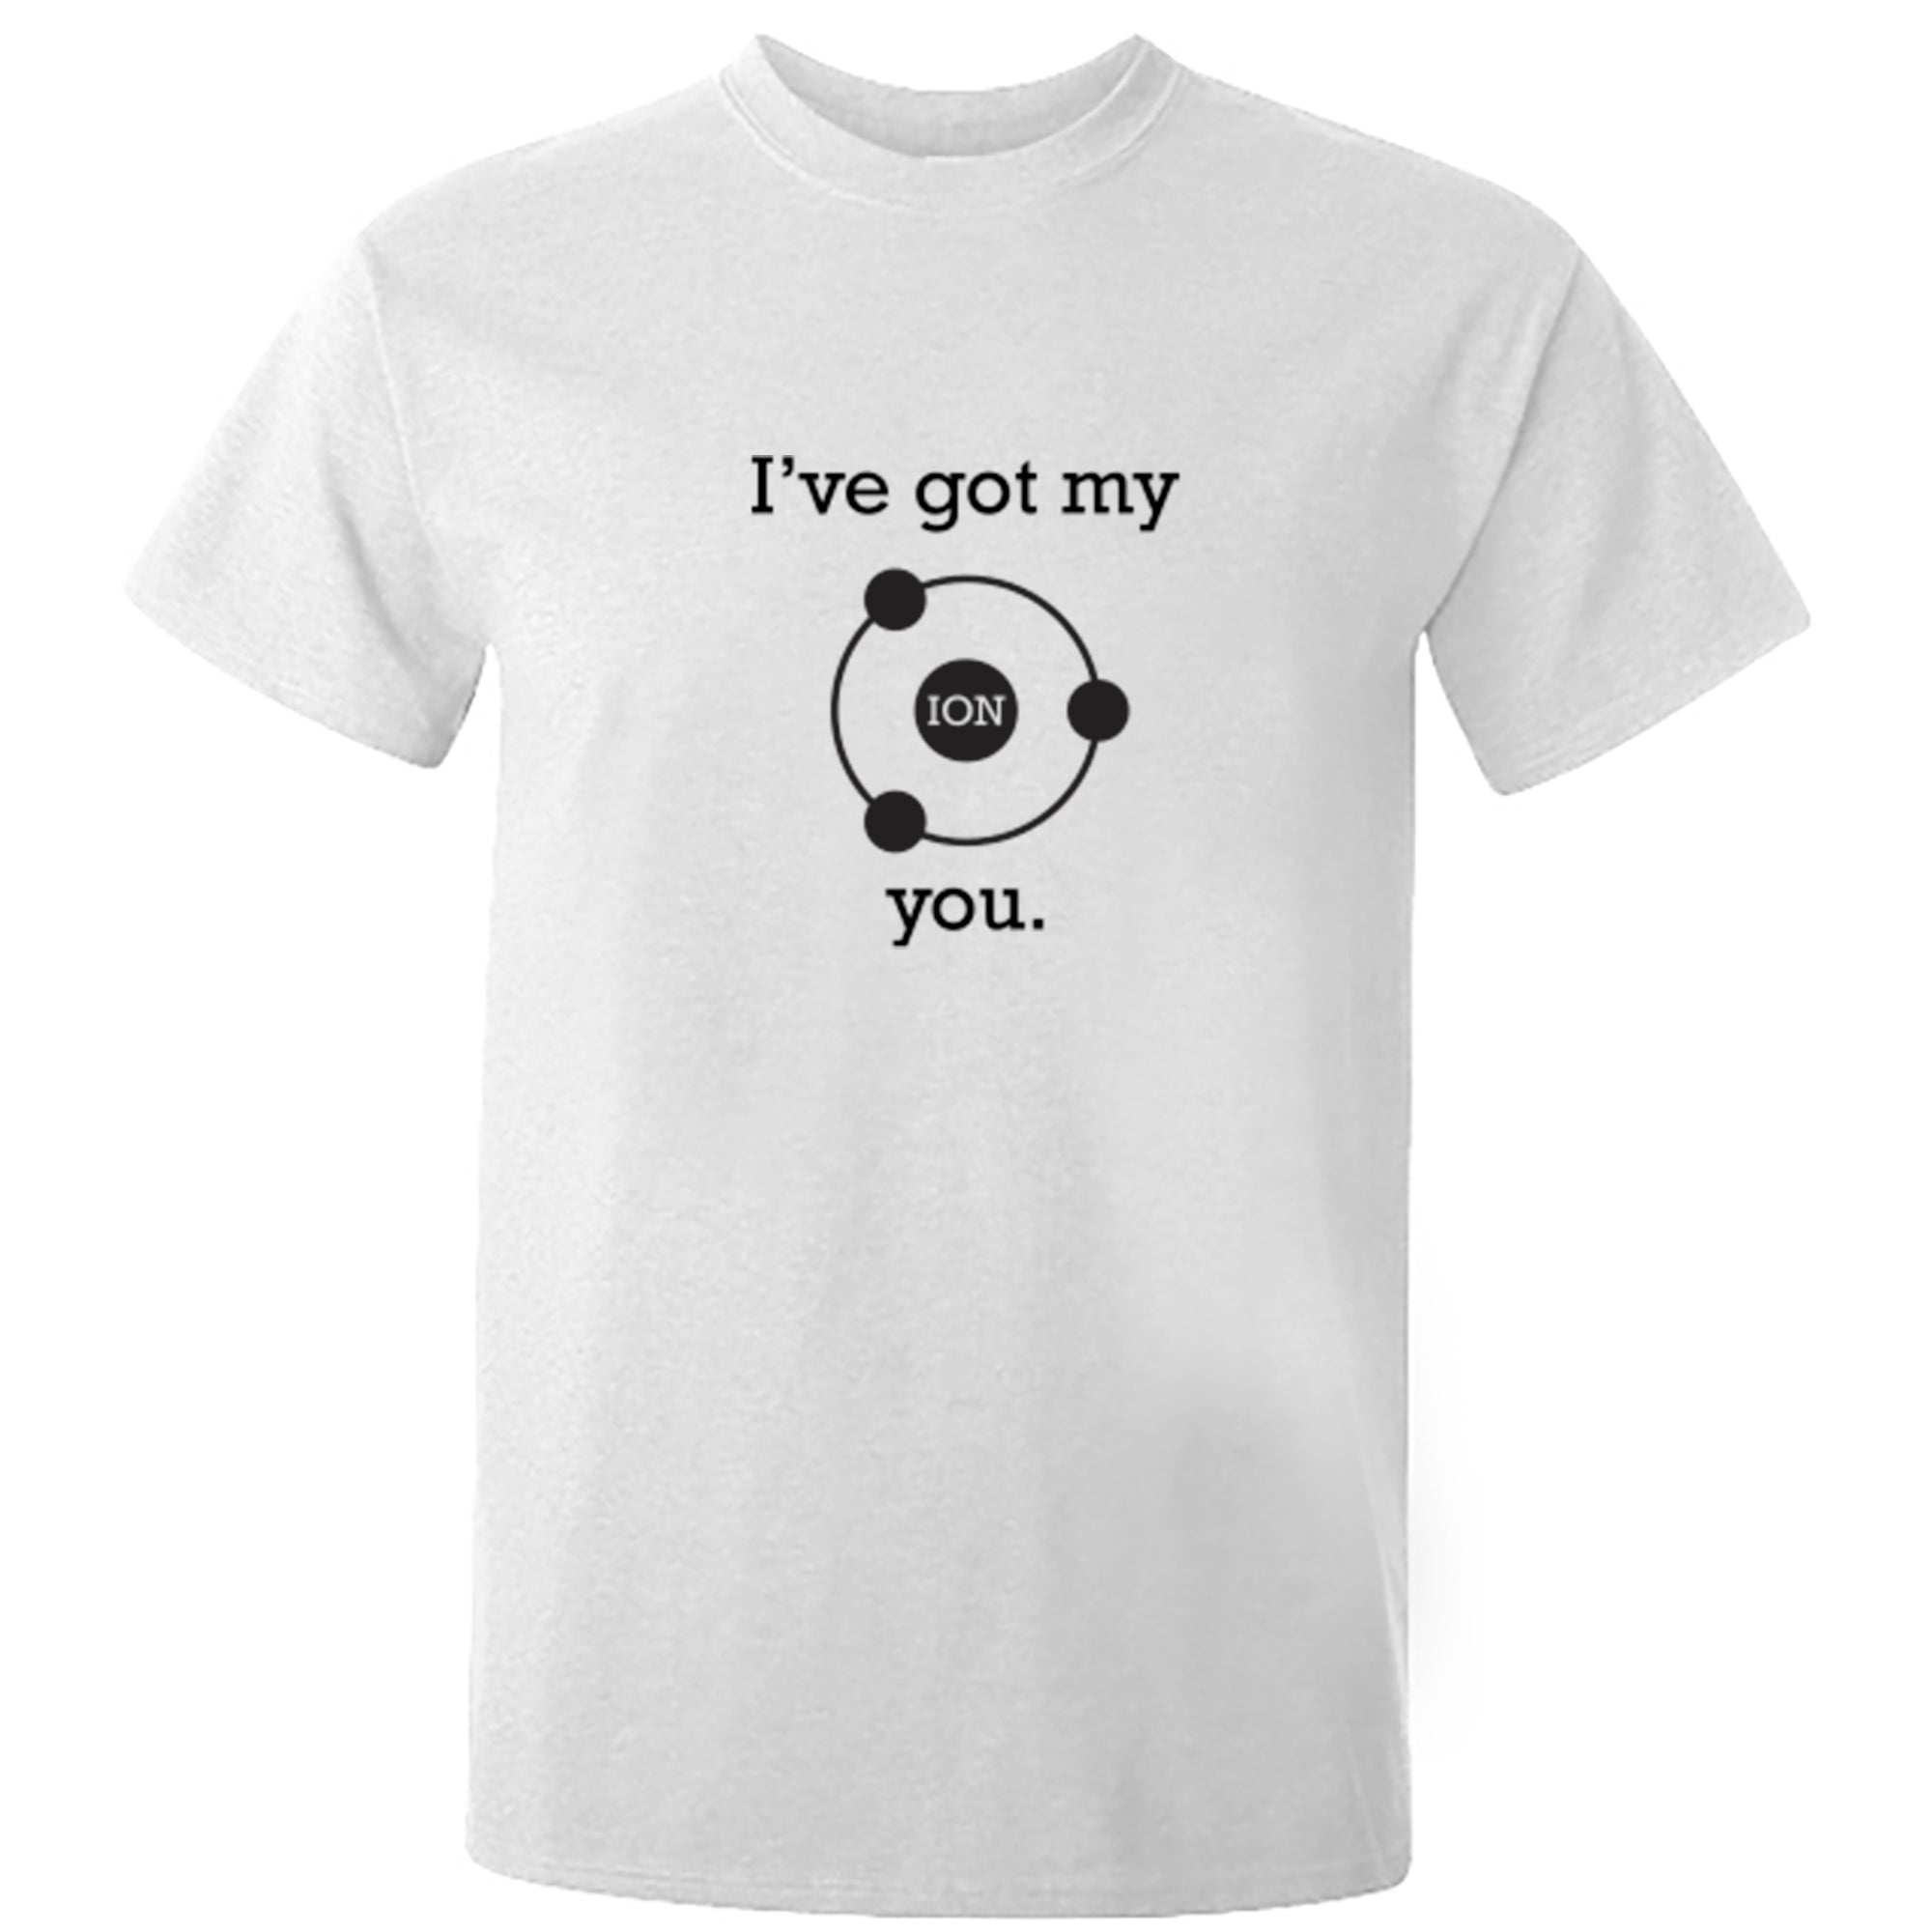 I've Got My ION You Unisex Fit T-Shirt A0055 - Illustrated Identity Ltd.